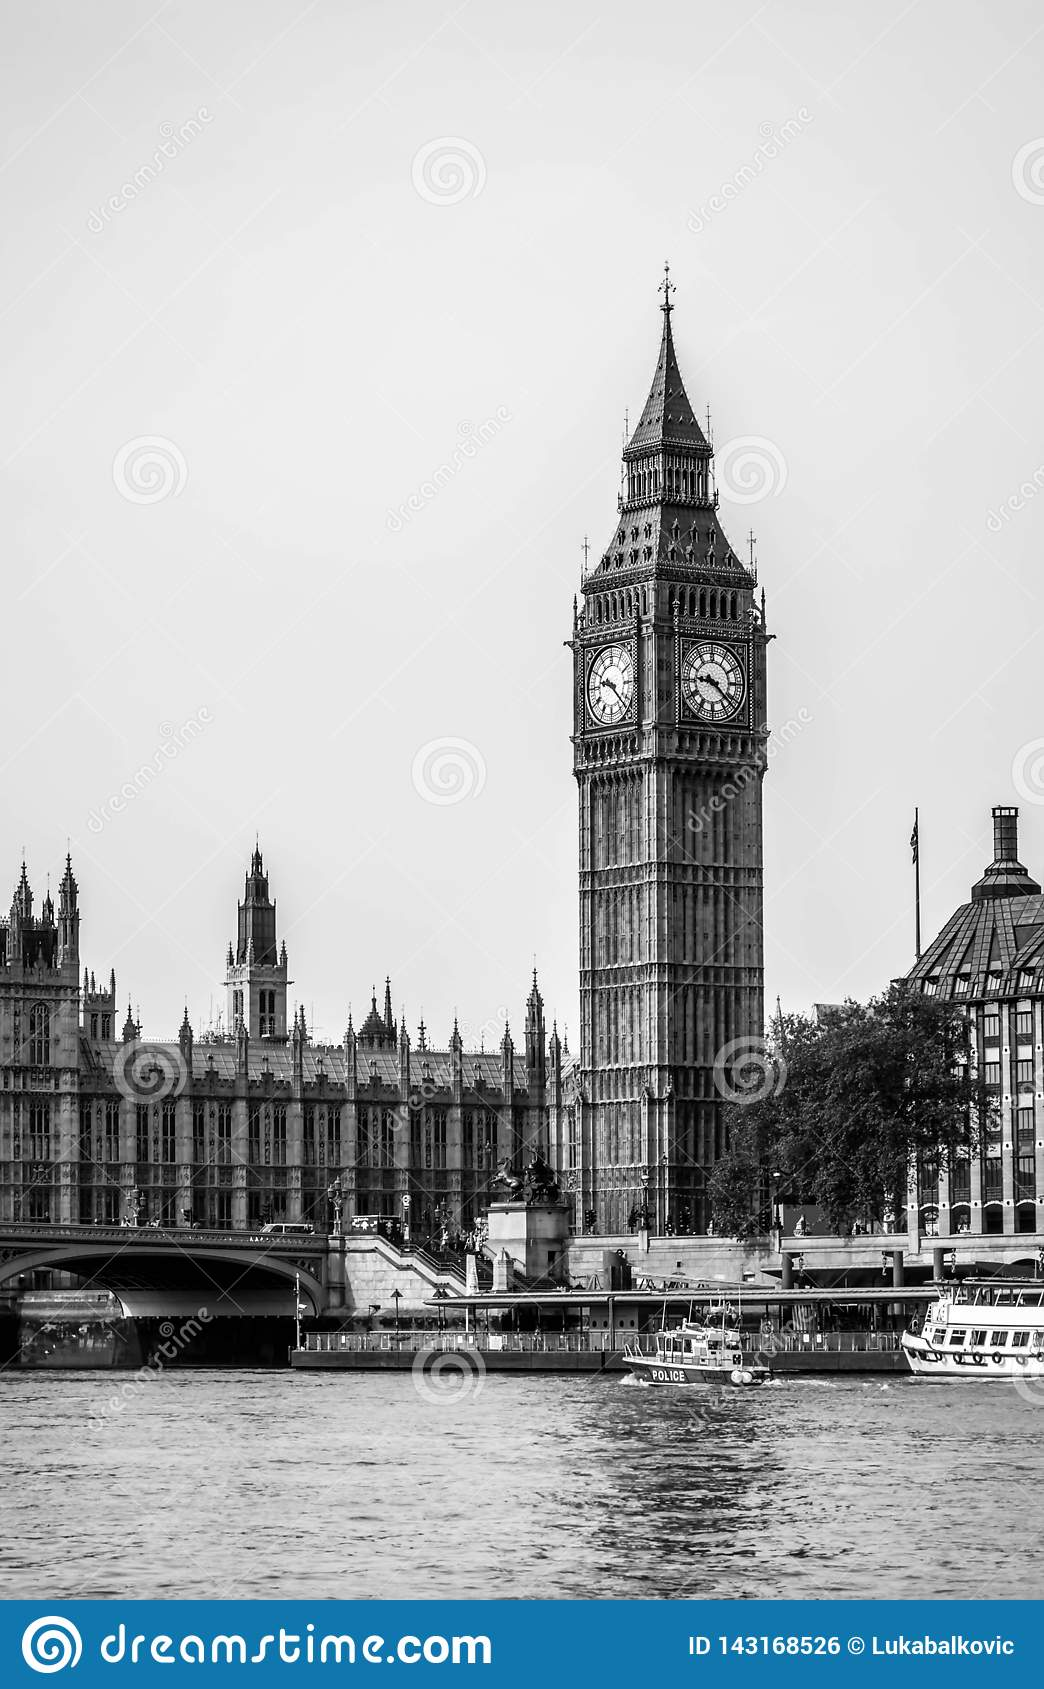 London city / England: Black and white of Big Ben and parliament